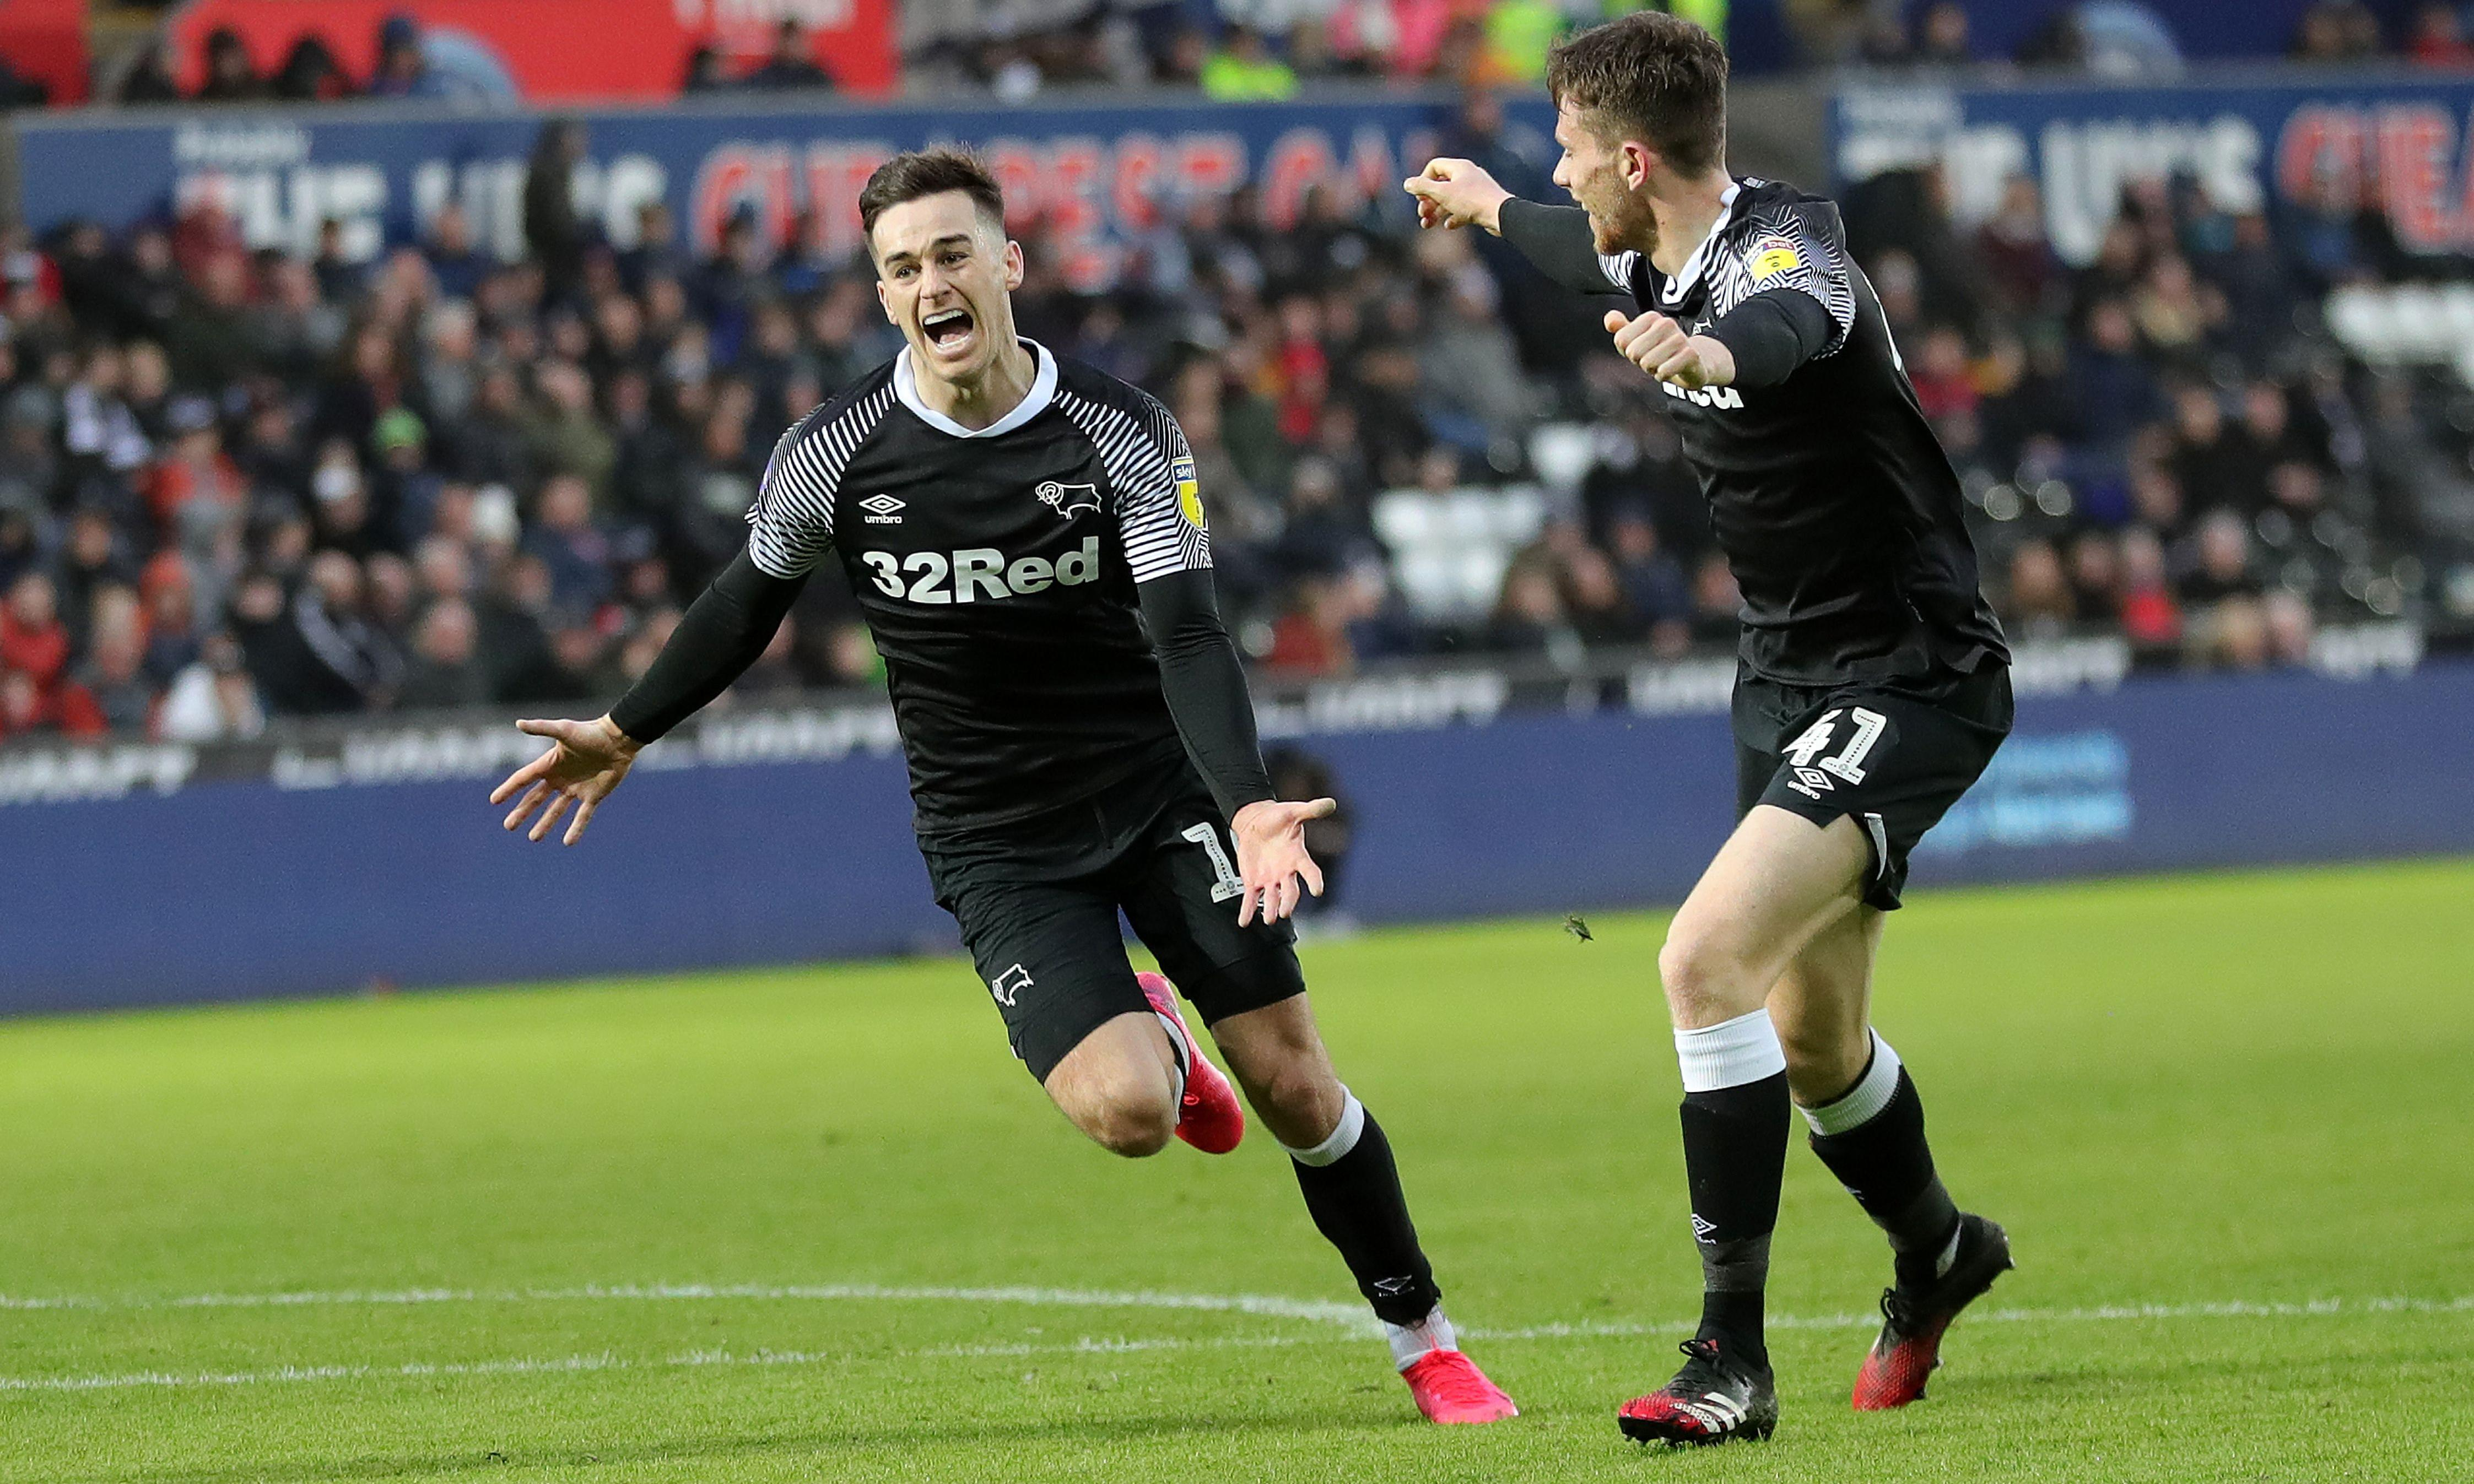 Tom Lawrence completes fightback for upwardly mobile Derby against Swansea